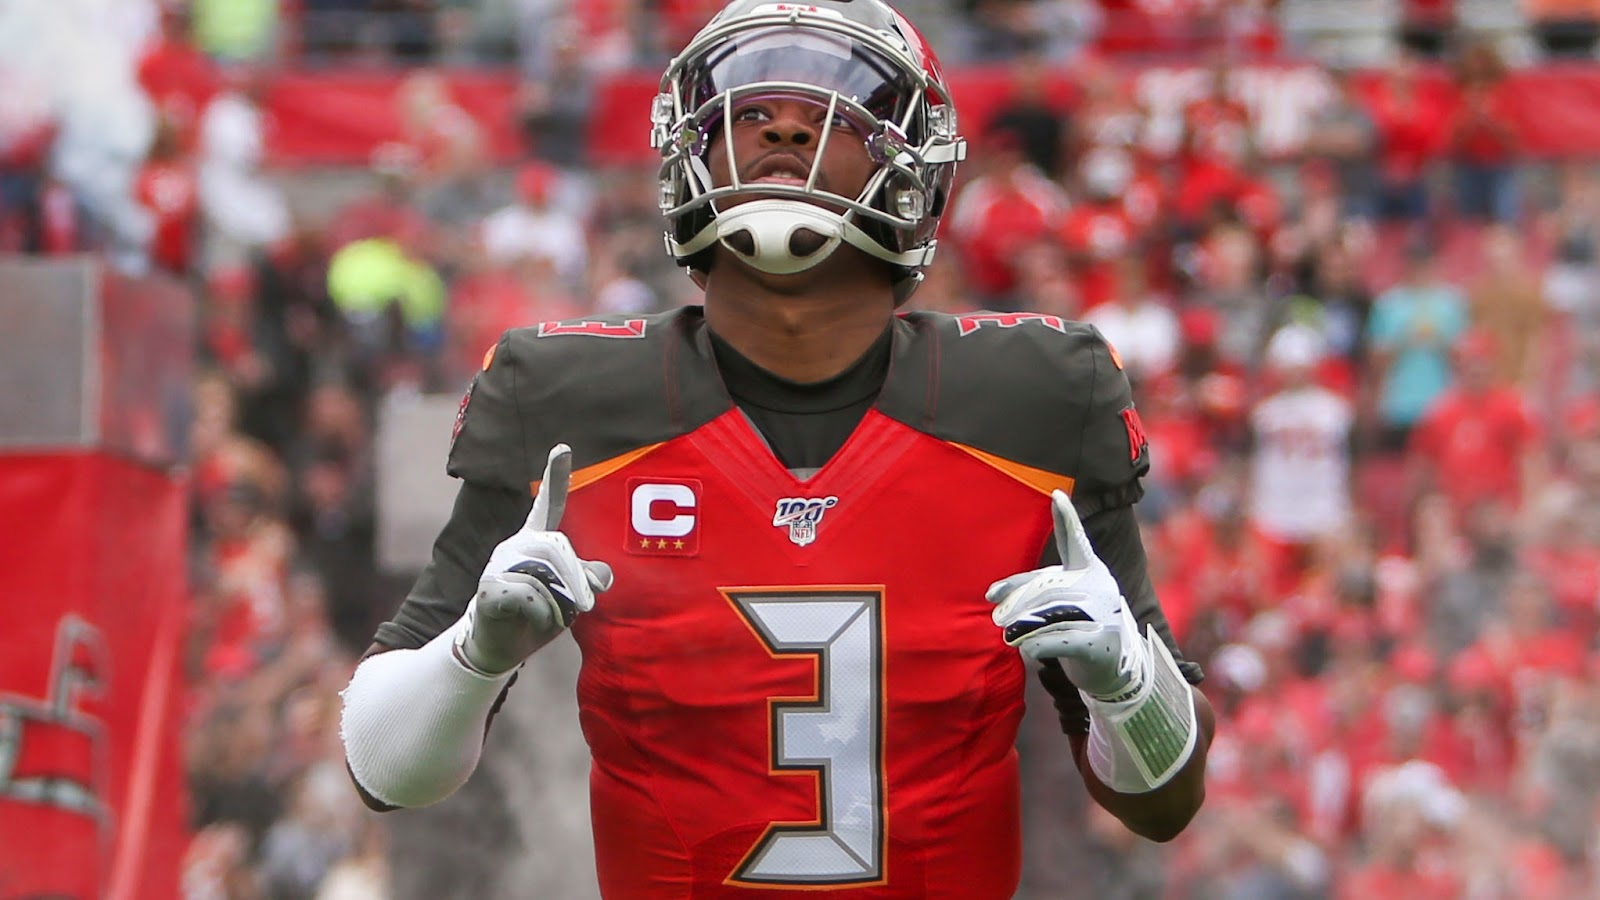 Rest in peace, Bucs uniforms. Or maybe that should be in pieces.